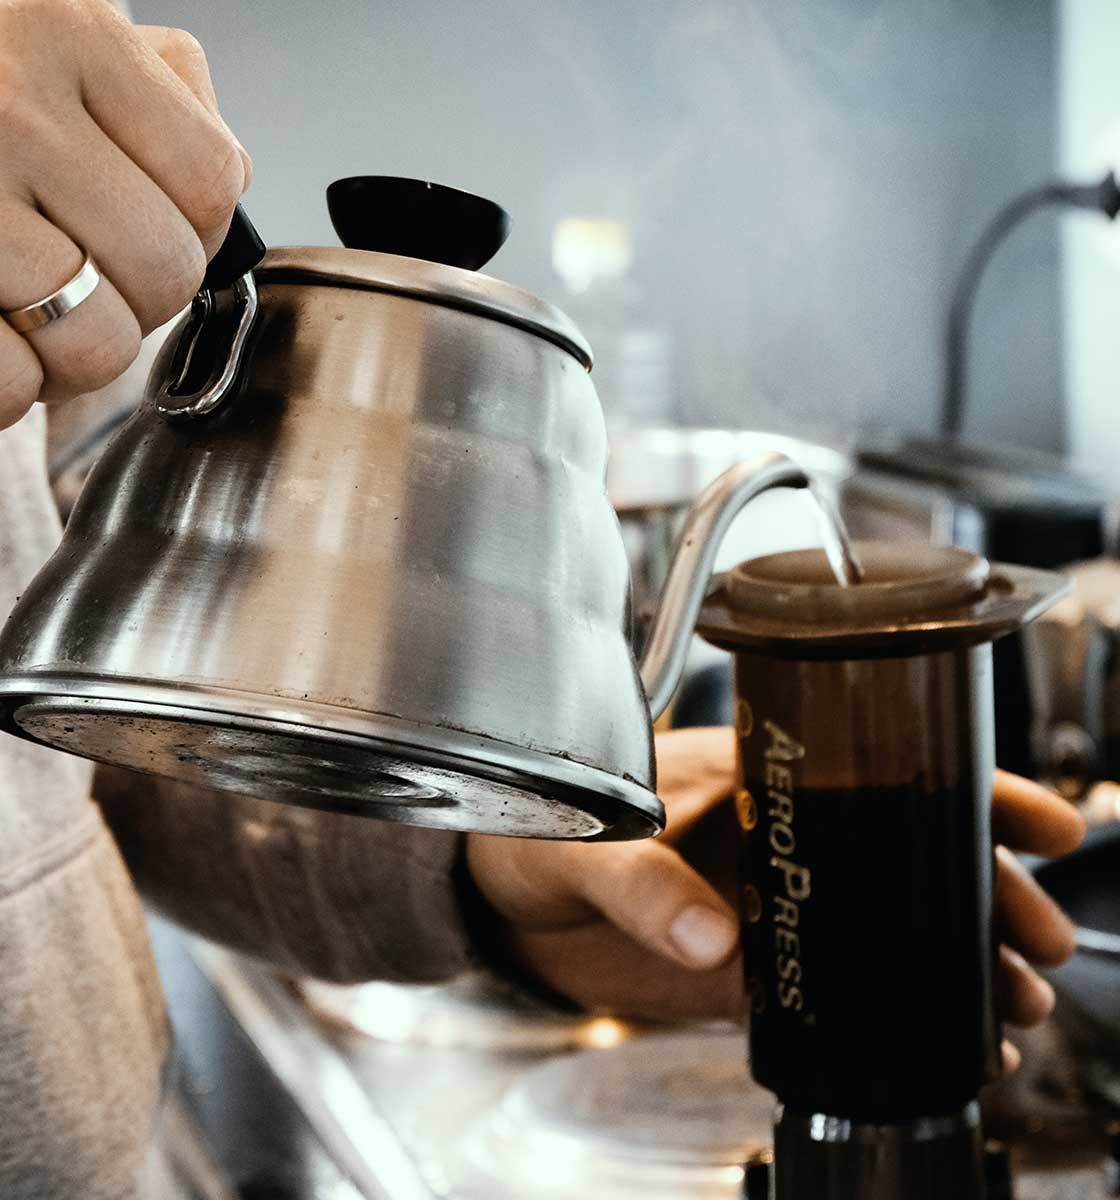 YORKS COFFEE ROASTERS - Aeropress BREW GUIDE 2020